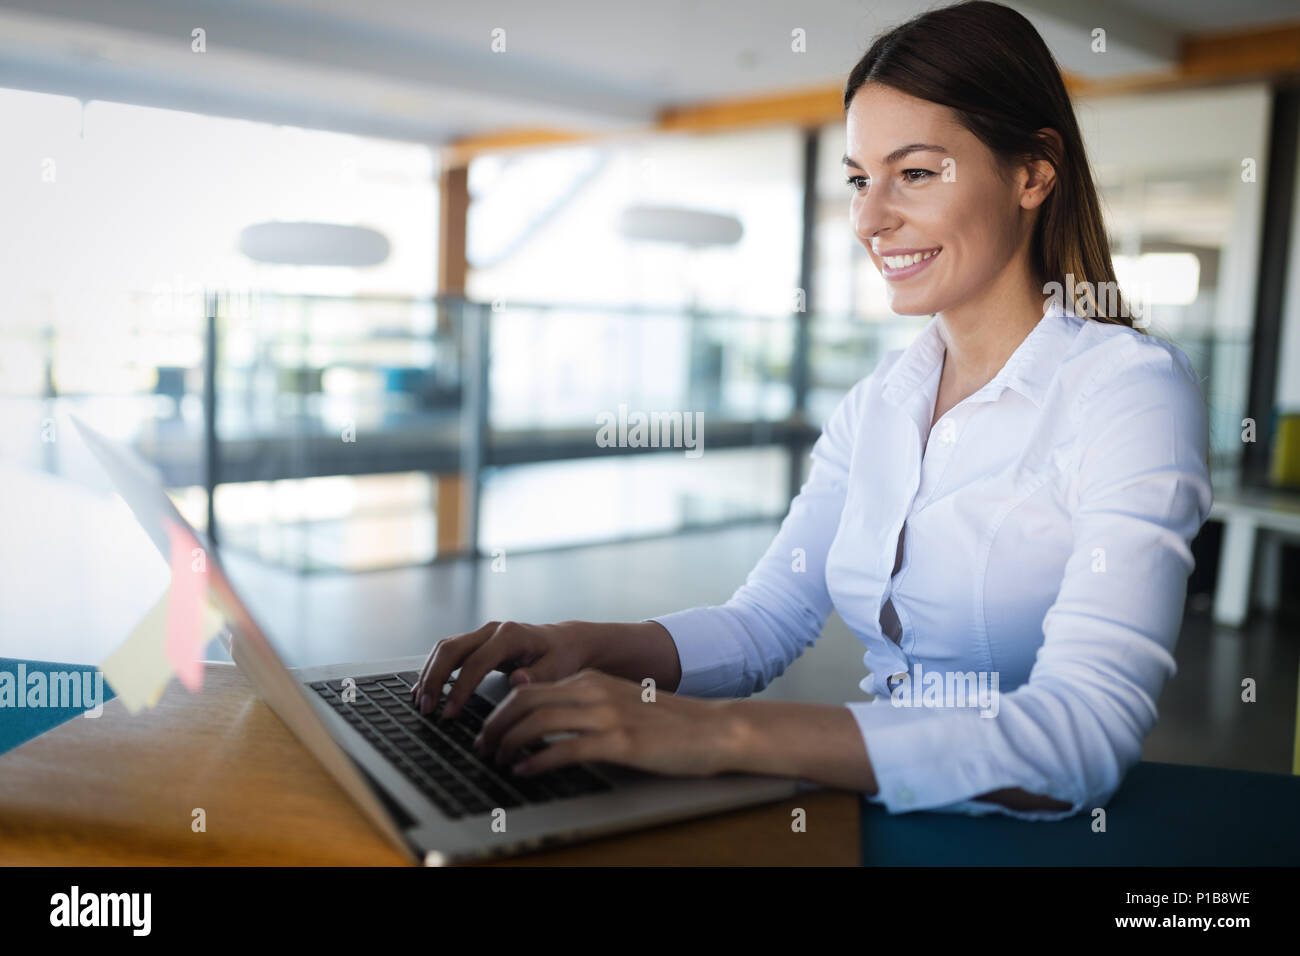 Attractive young female architect working on laptop - Stock Image